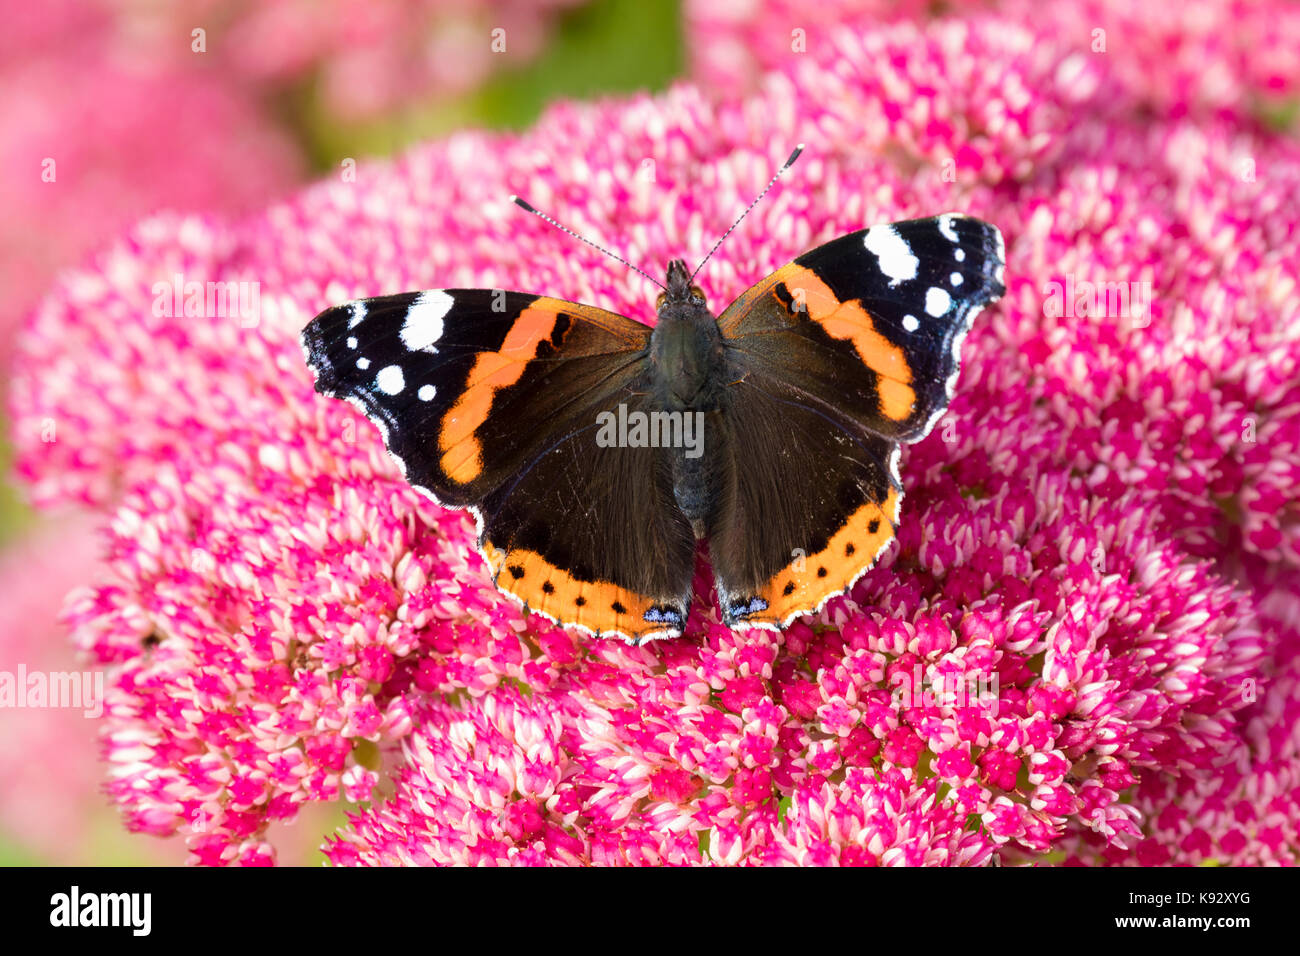 Adult Red admiral butterfly, Vanessa atalanta, feeding on the September flowers of Sedum spectabile Stock Photo